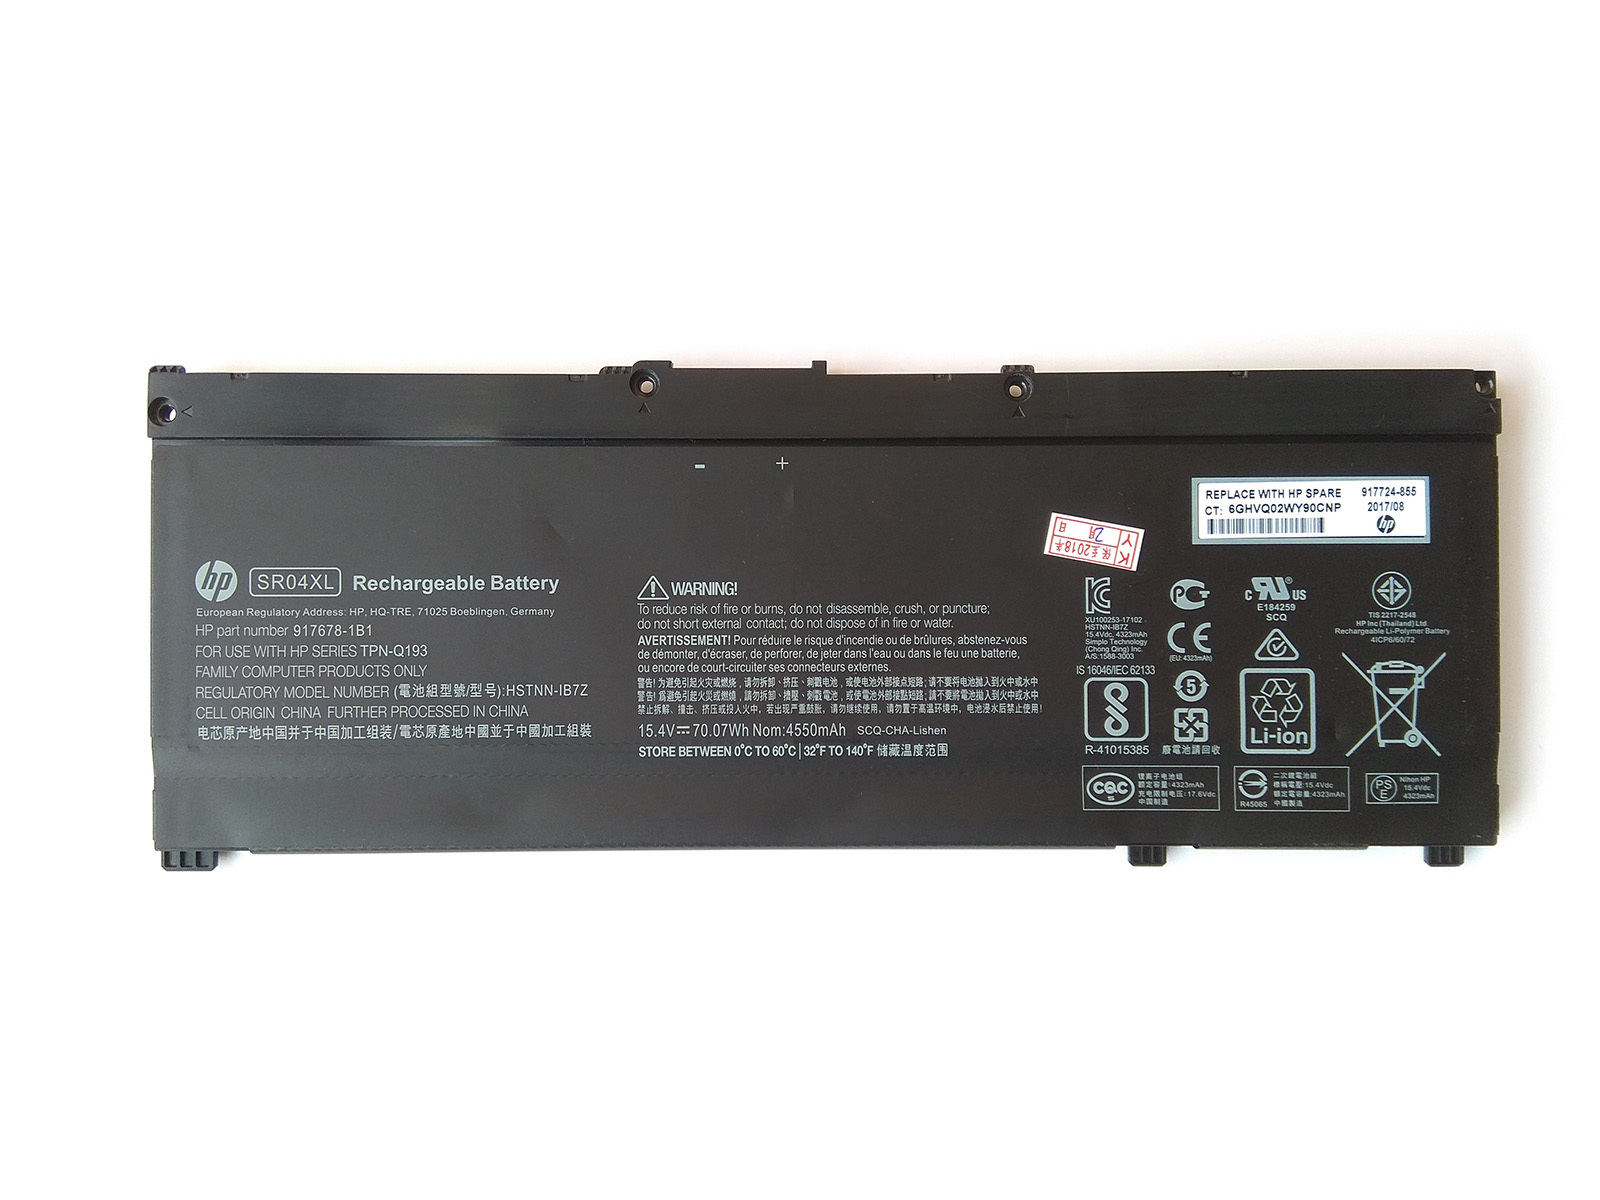 Primary image for HP Omen 15-CE007NQ 1WR64EA Battery SR04XL 917724-855 TPN-Q193